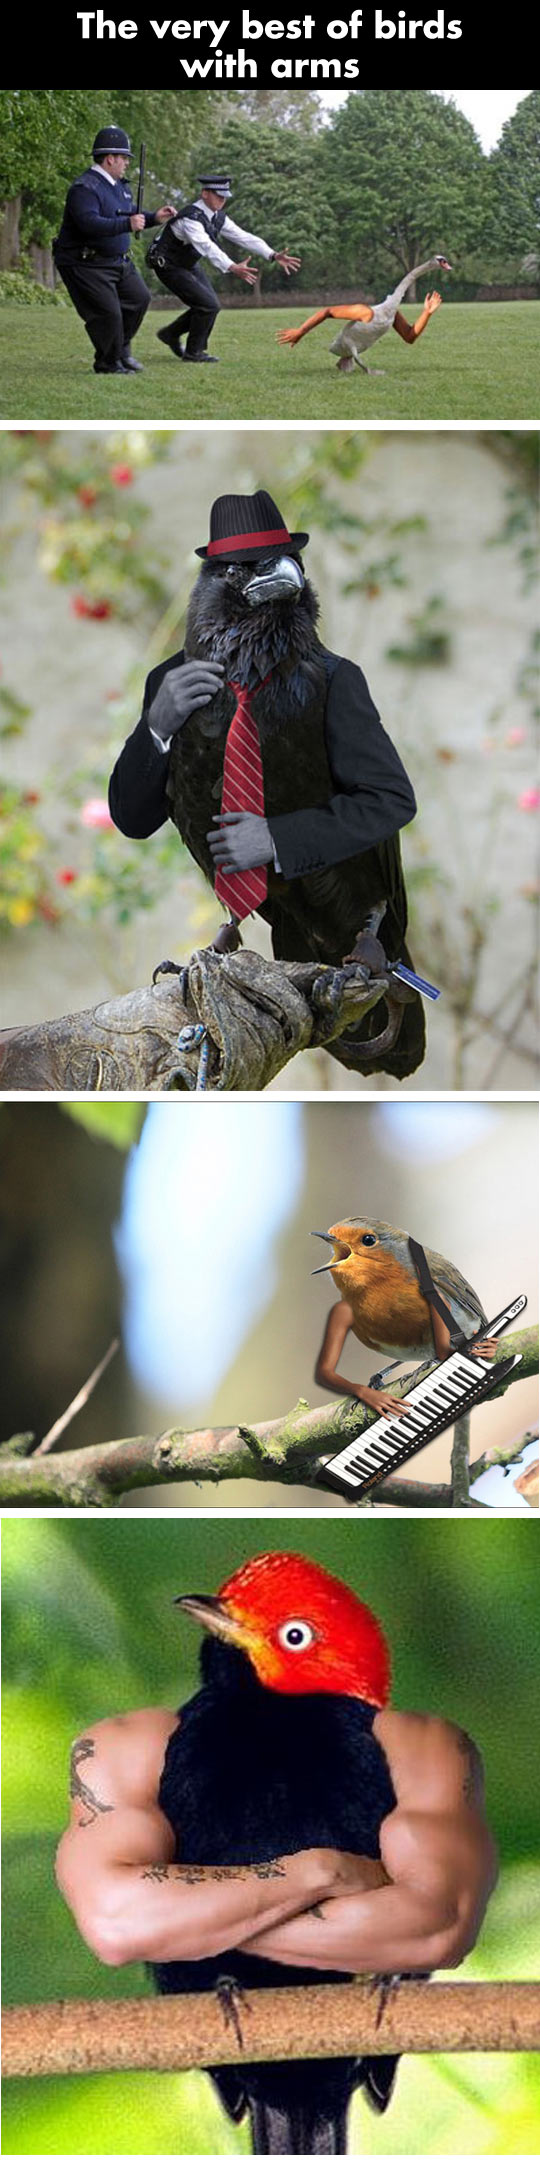 Birds with human arms...